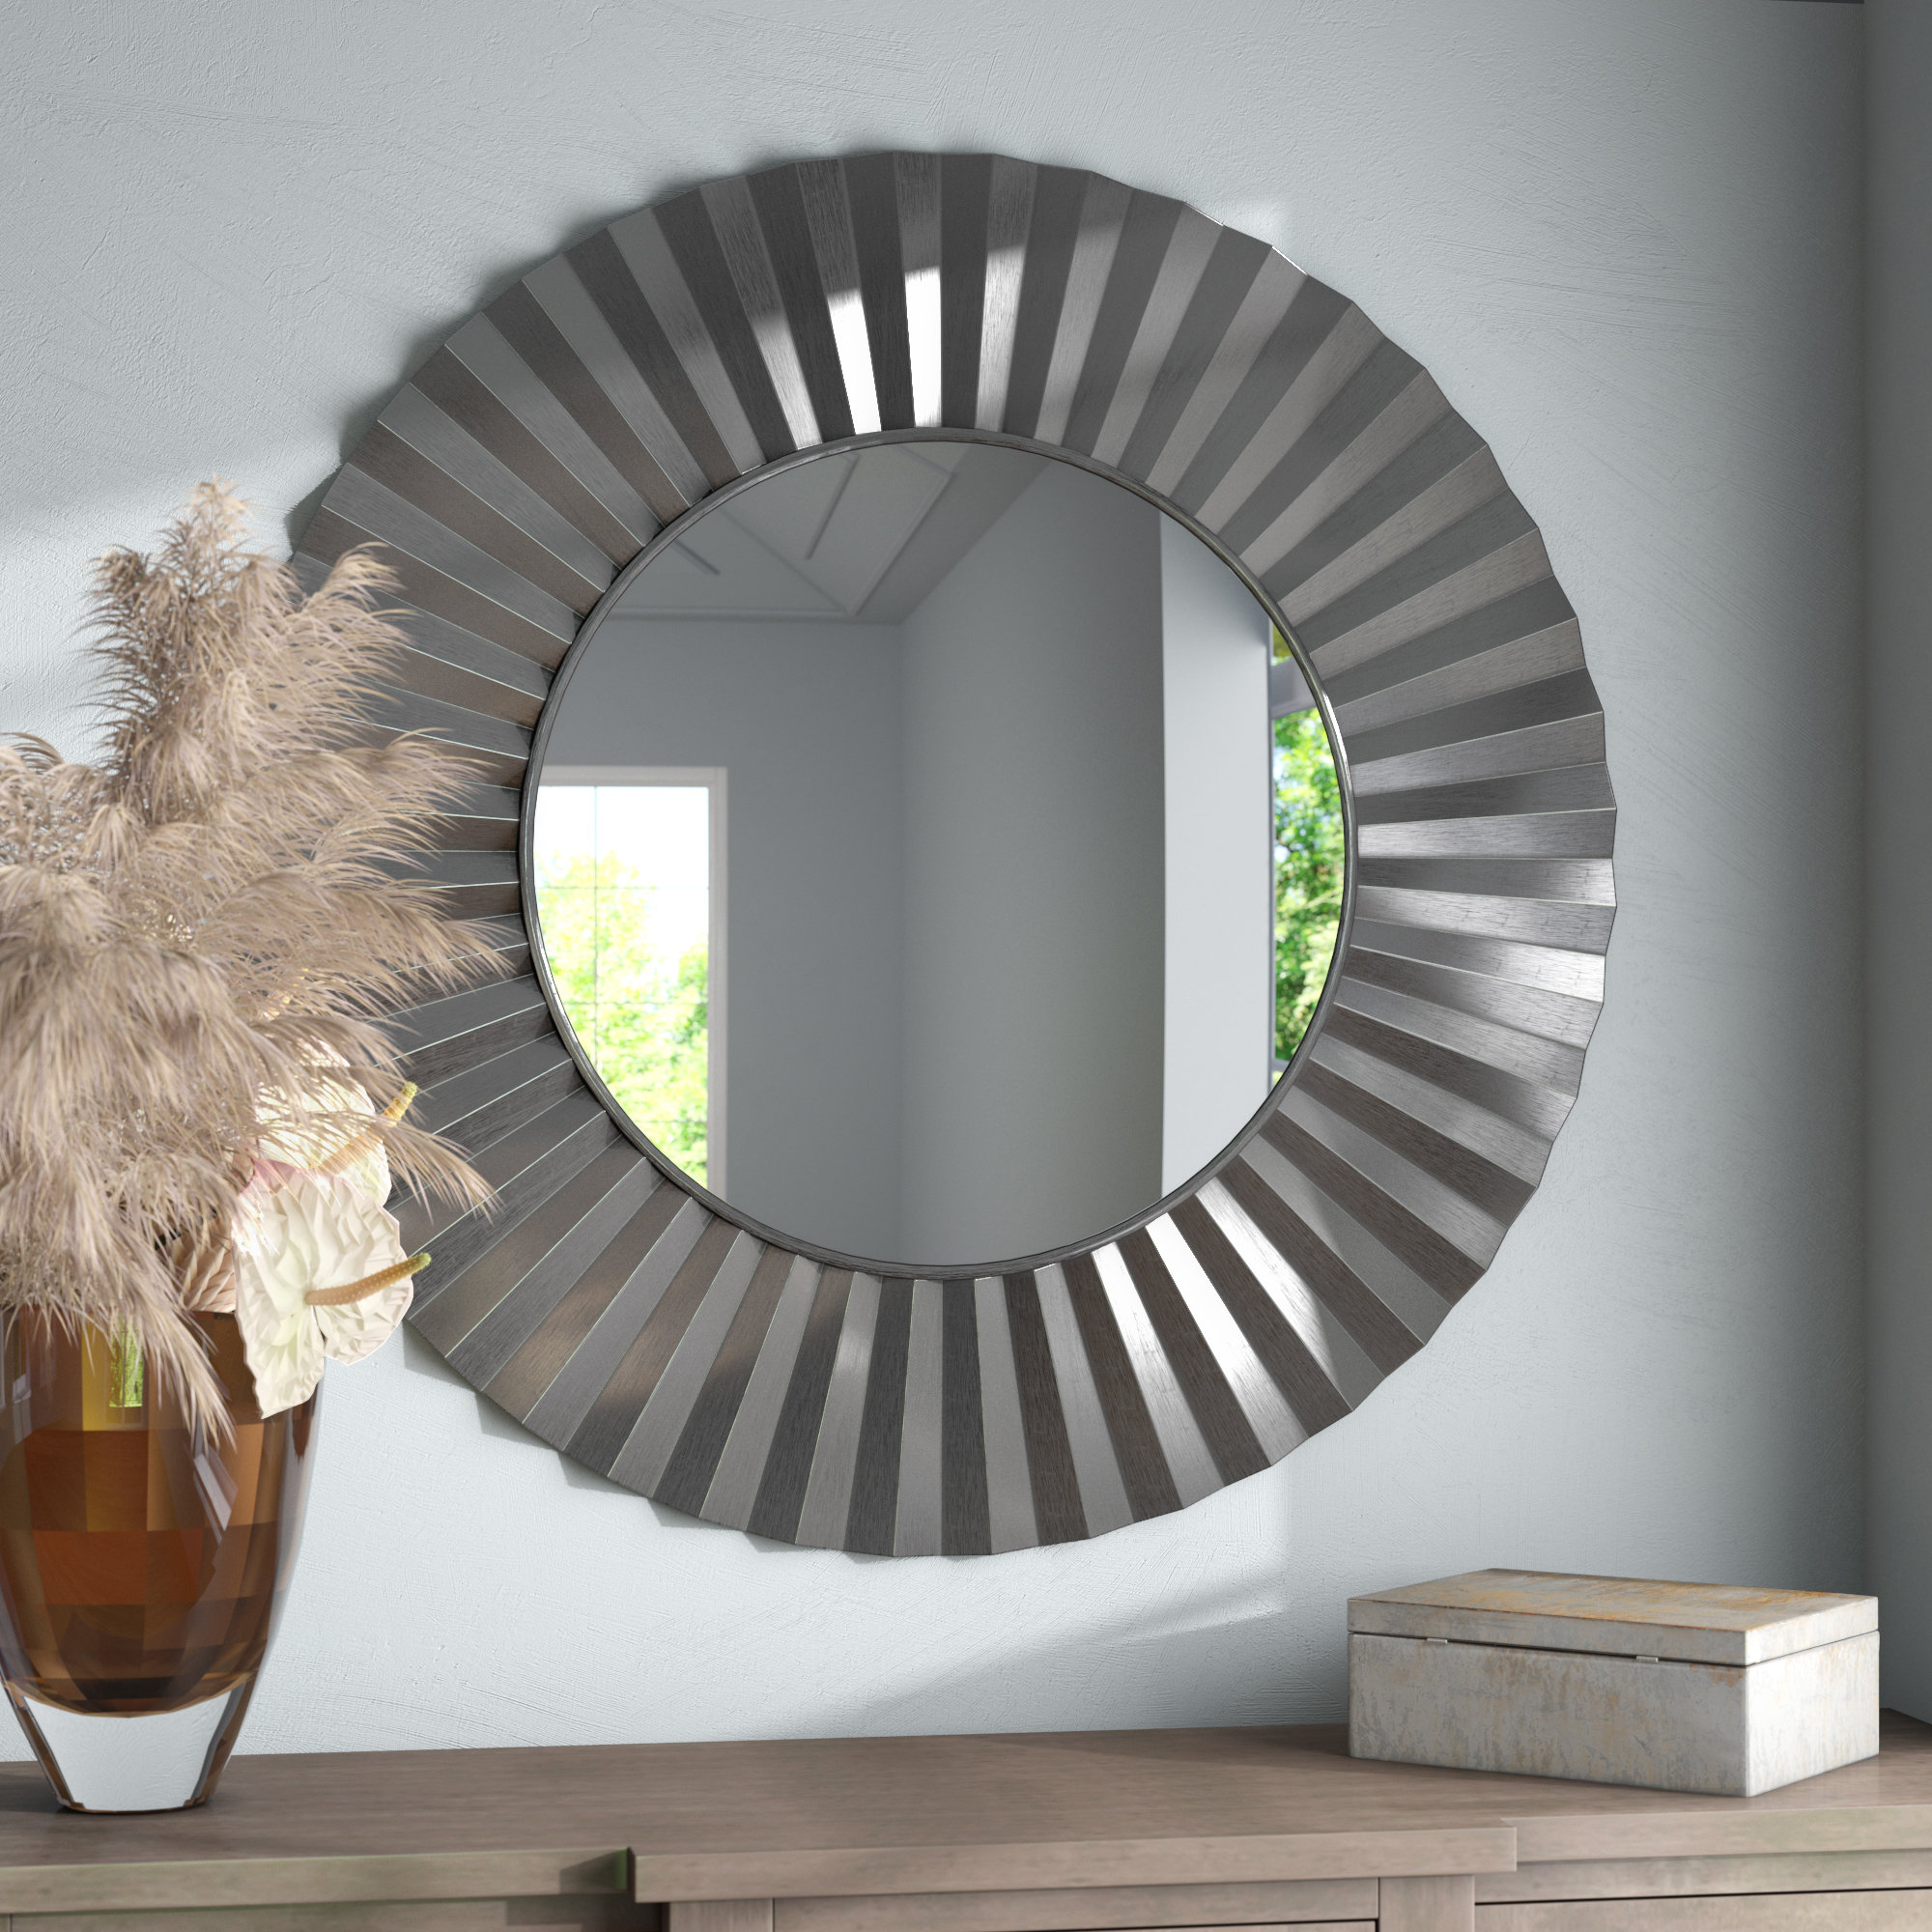 Star Burst Mirror | Wayfair In Carstens Sunburst Leaves Wall Mirrors (Image 17 of 20)